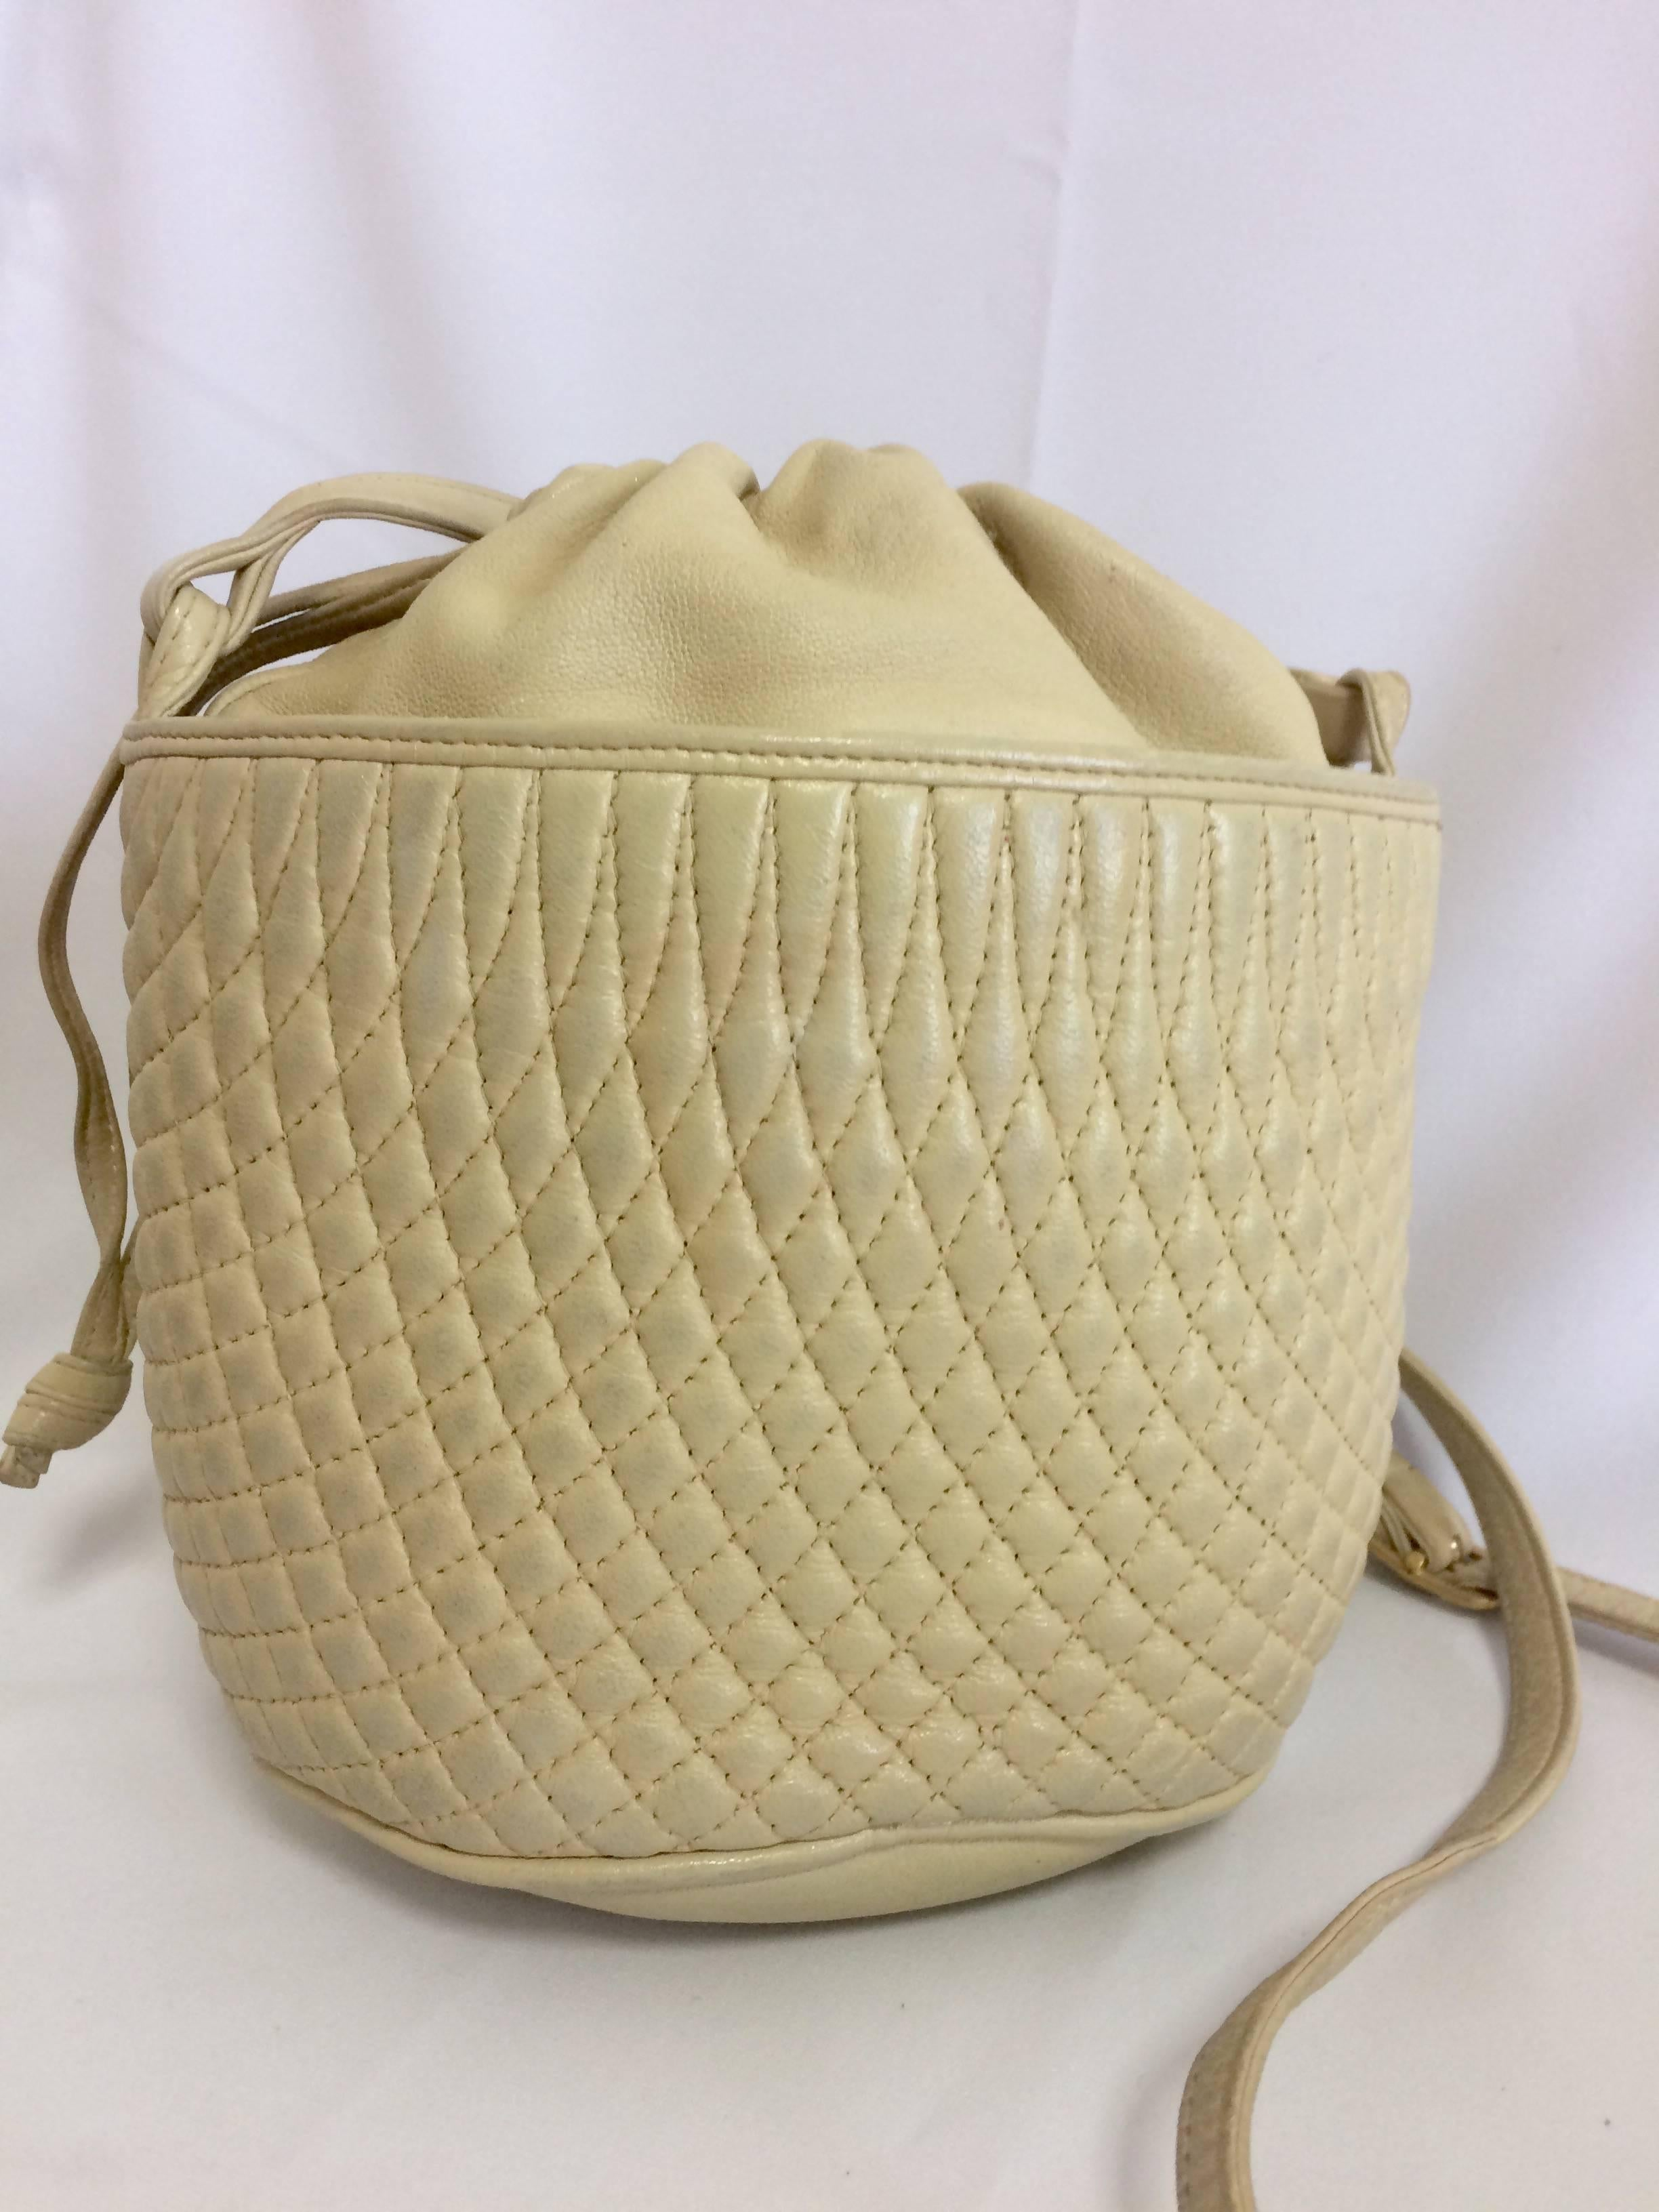 Bally Vintage Bally Ivory White Quilted Lambskin Mini Hobo, Bucket Shoulder Bag